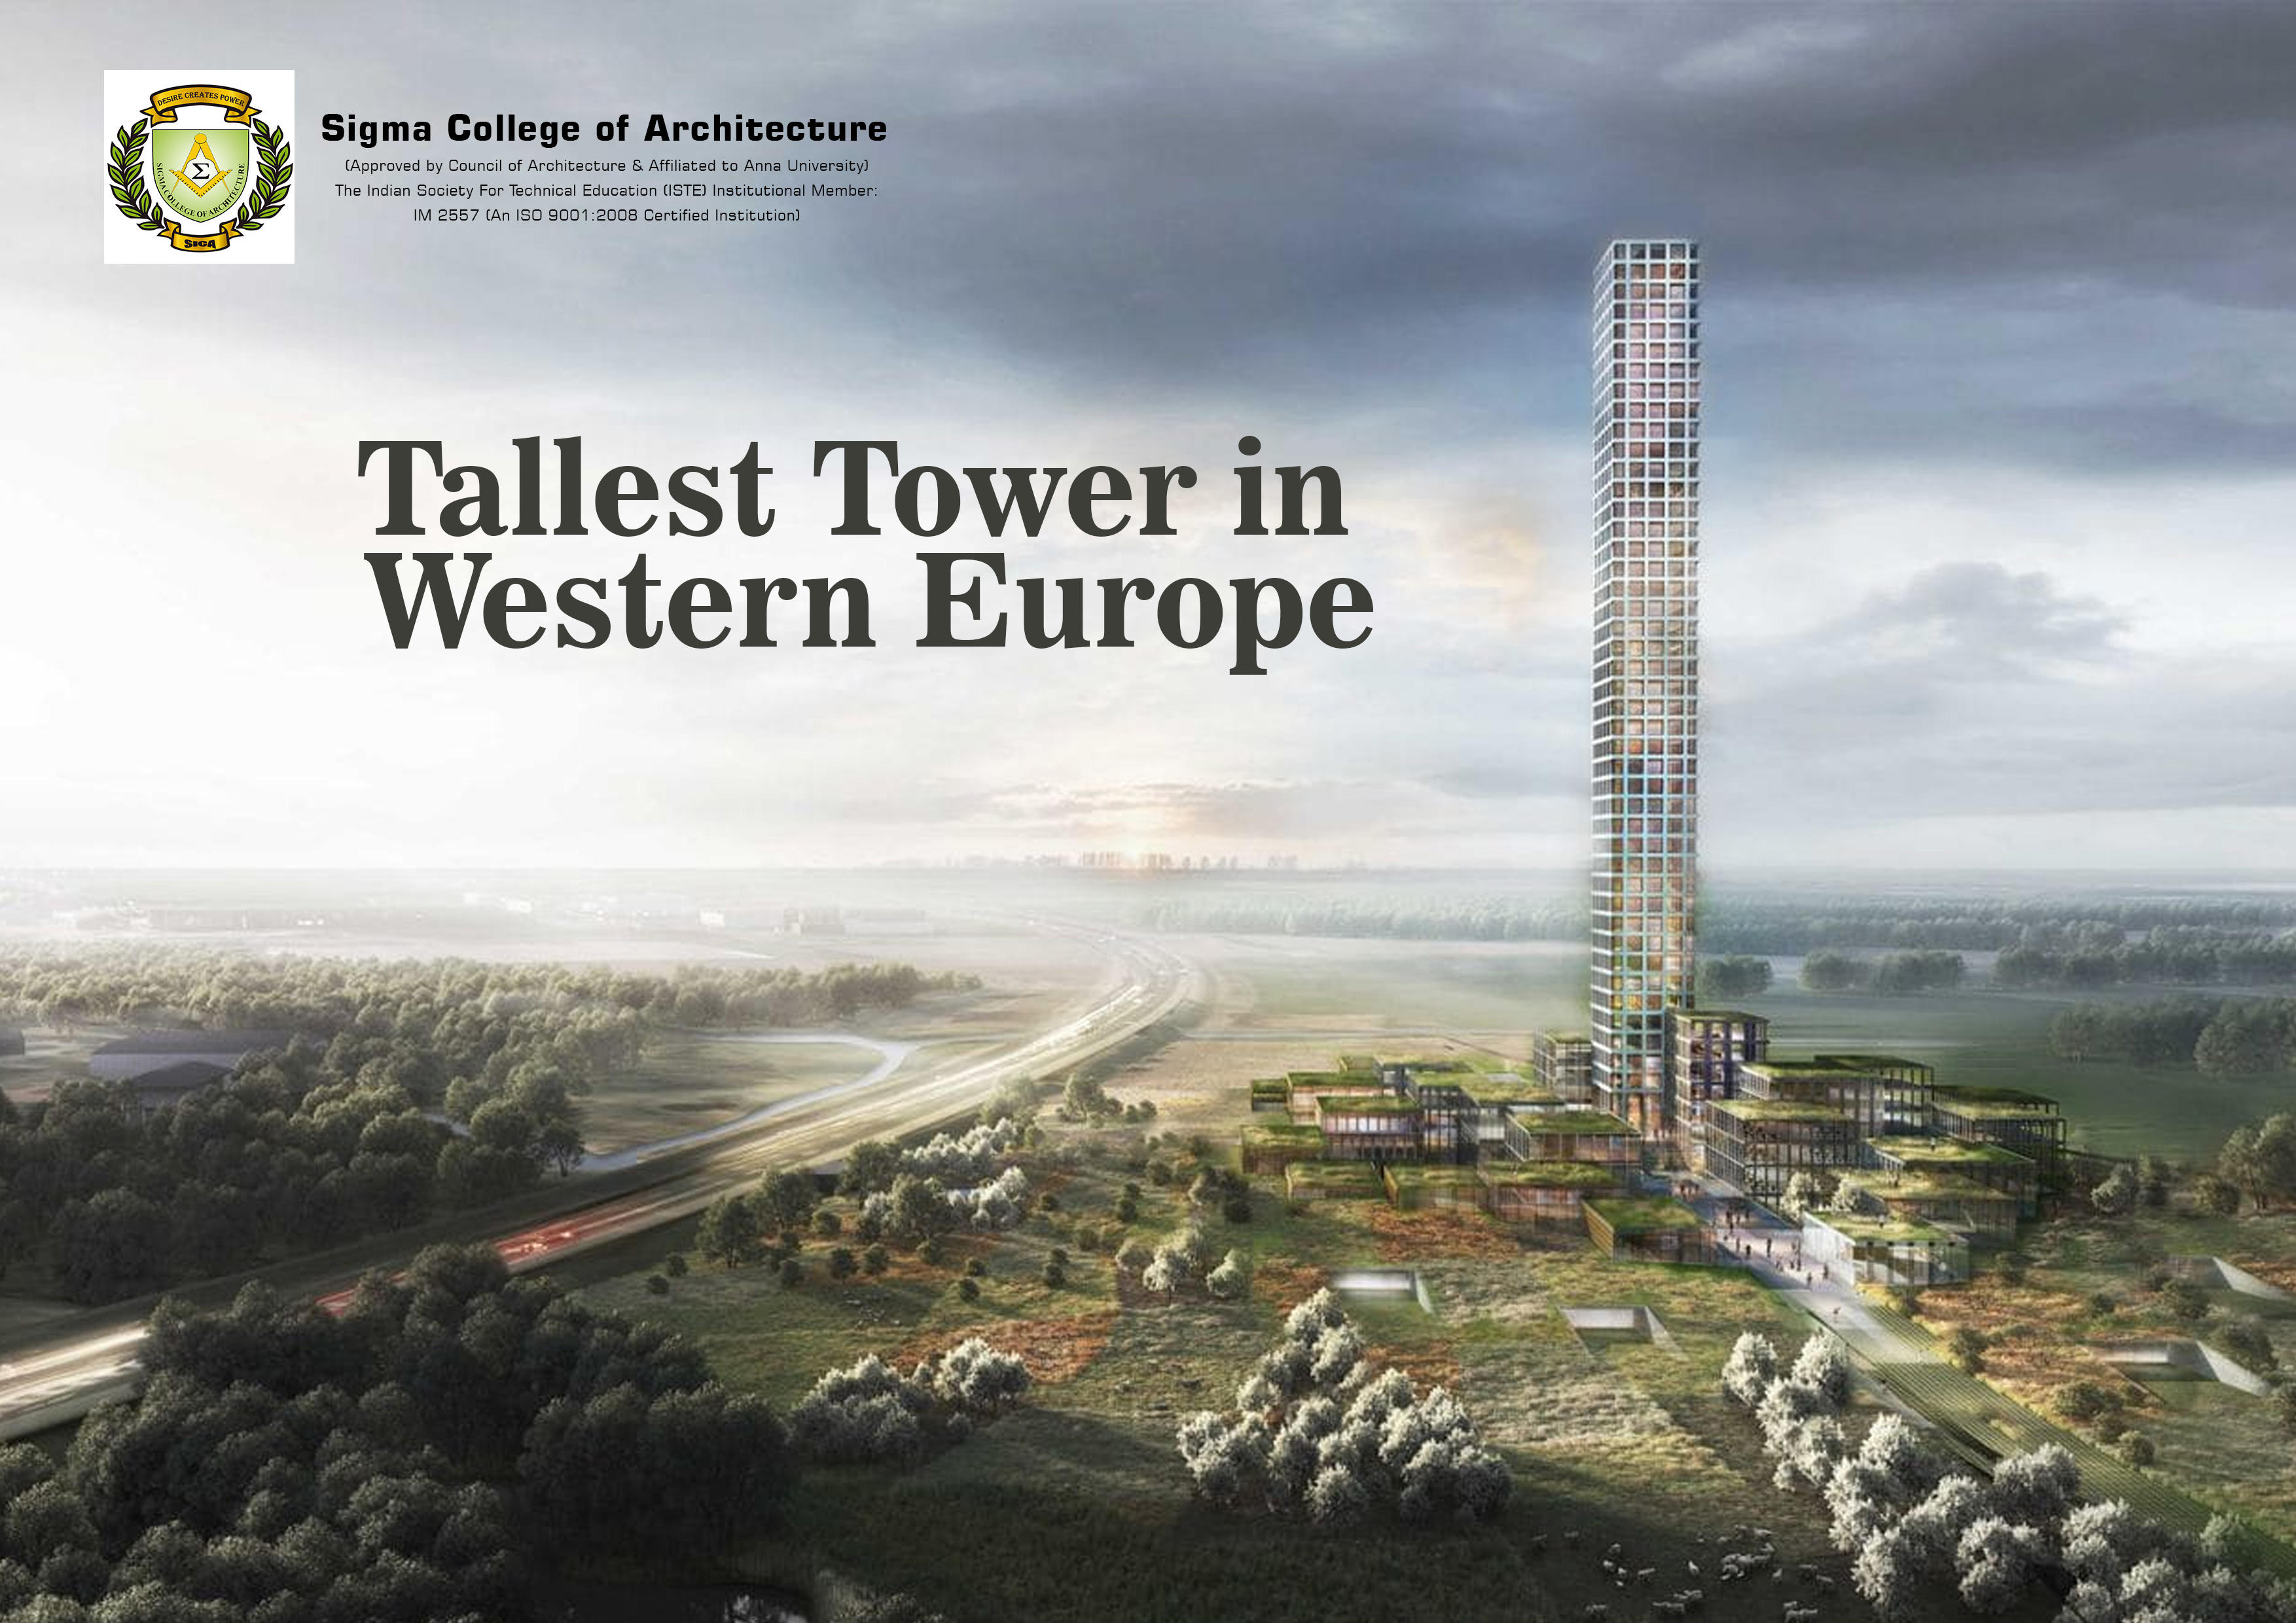 Tallest Tower in Western Europe